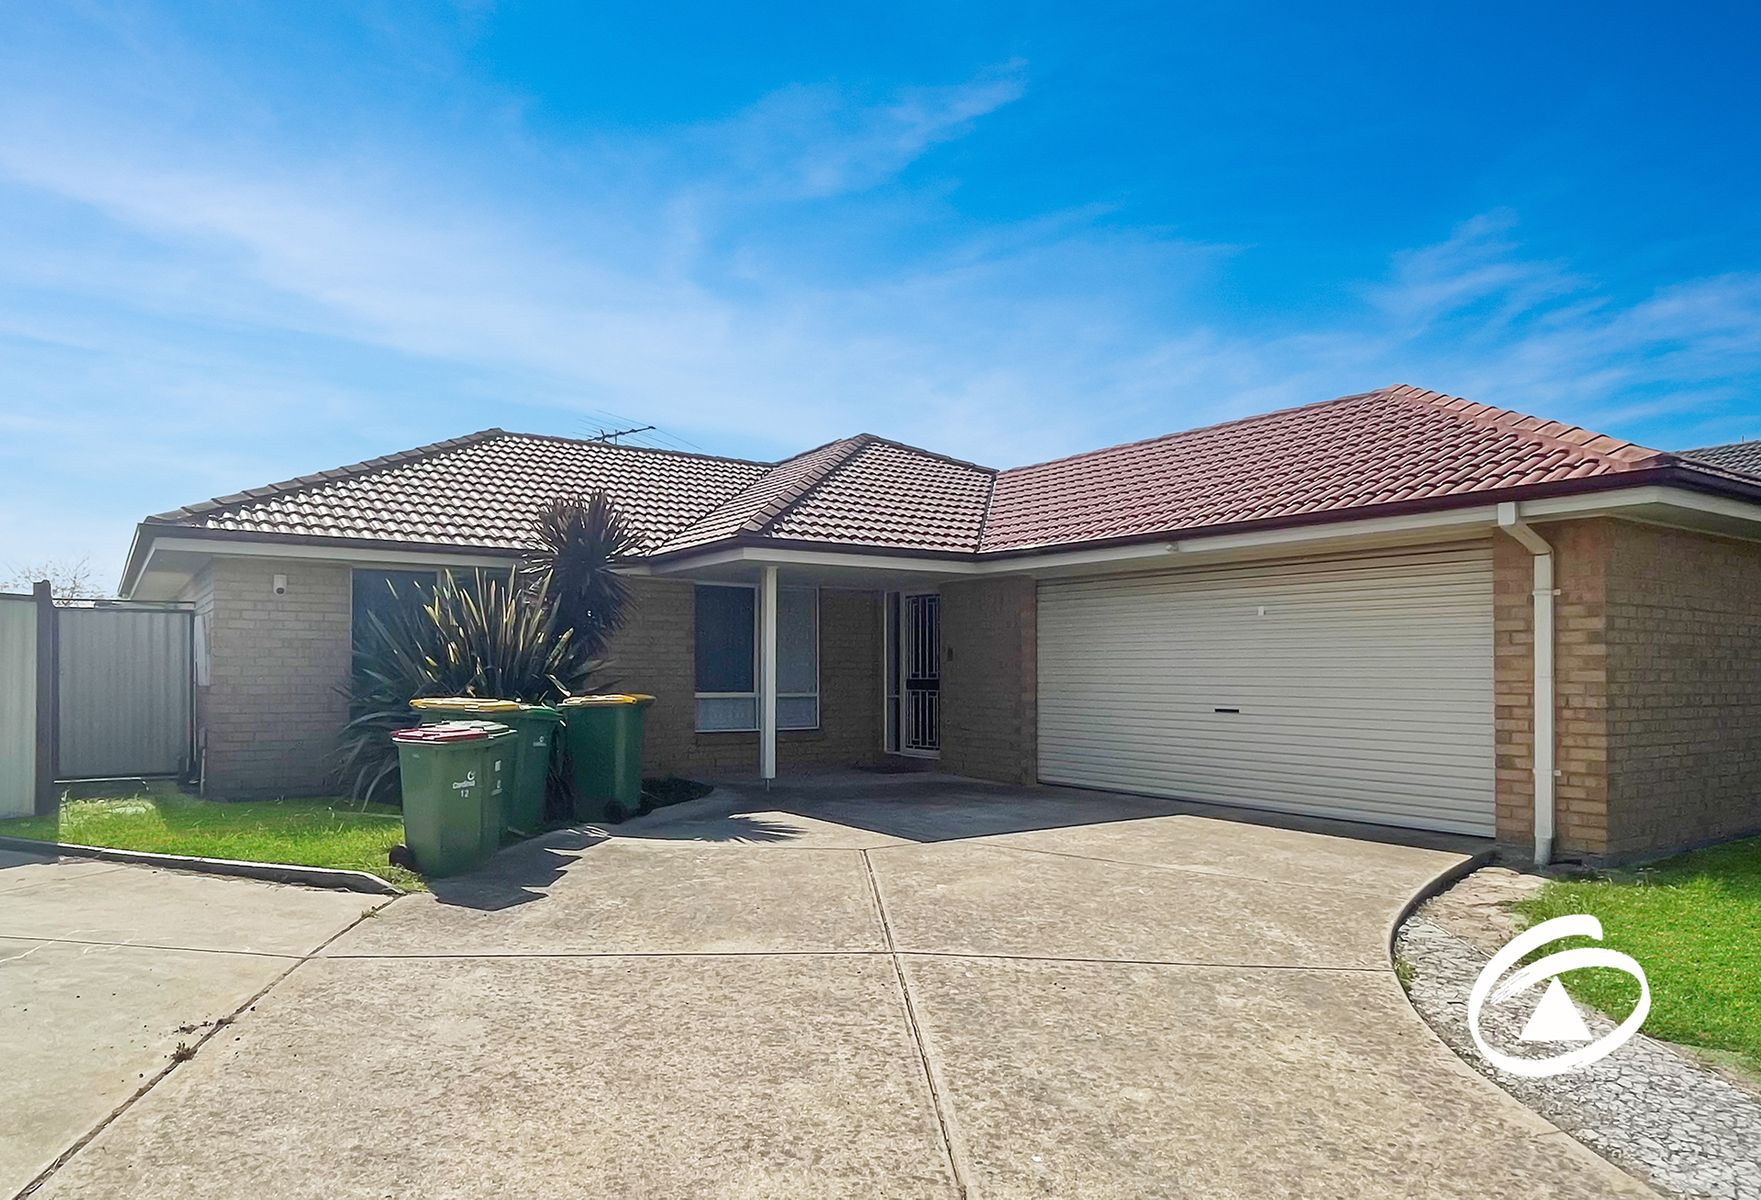 12 Lorikeet Court, Pakenham, VIC 3810